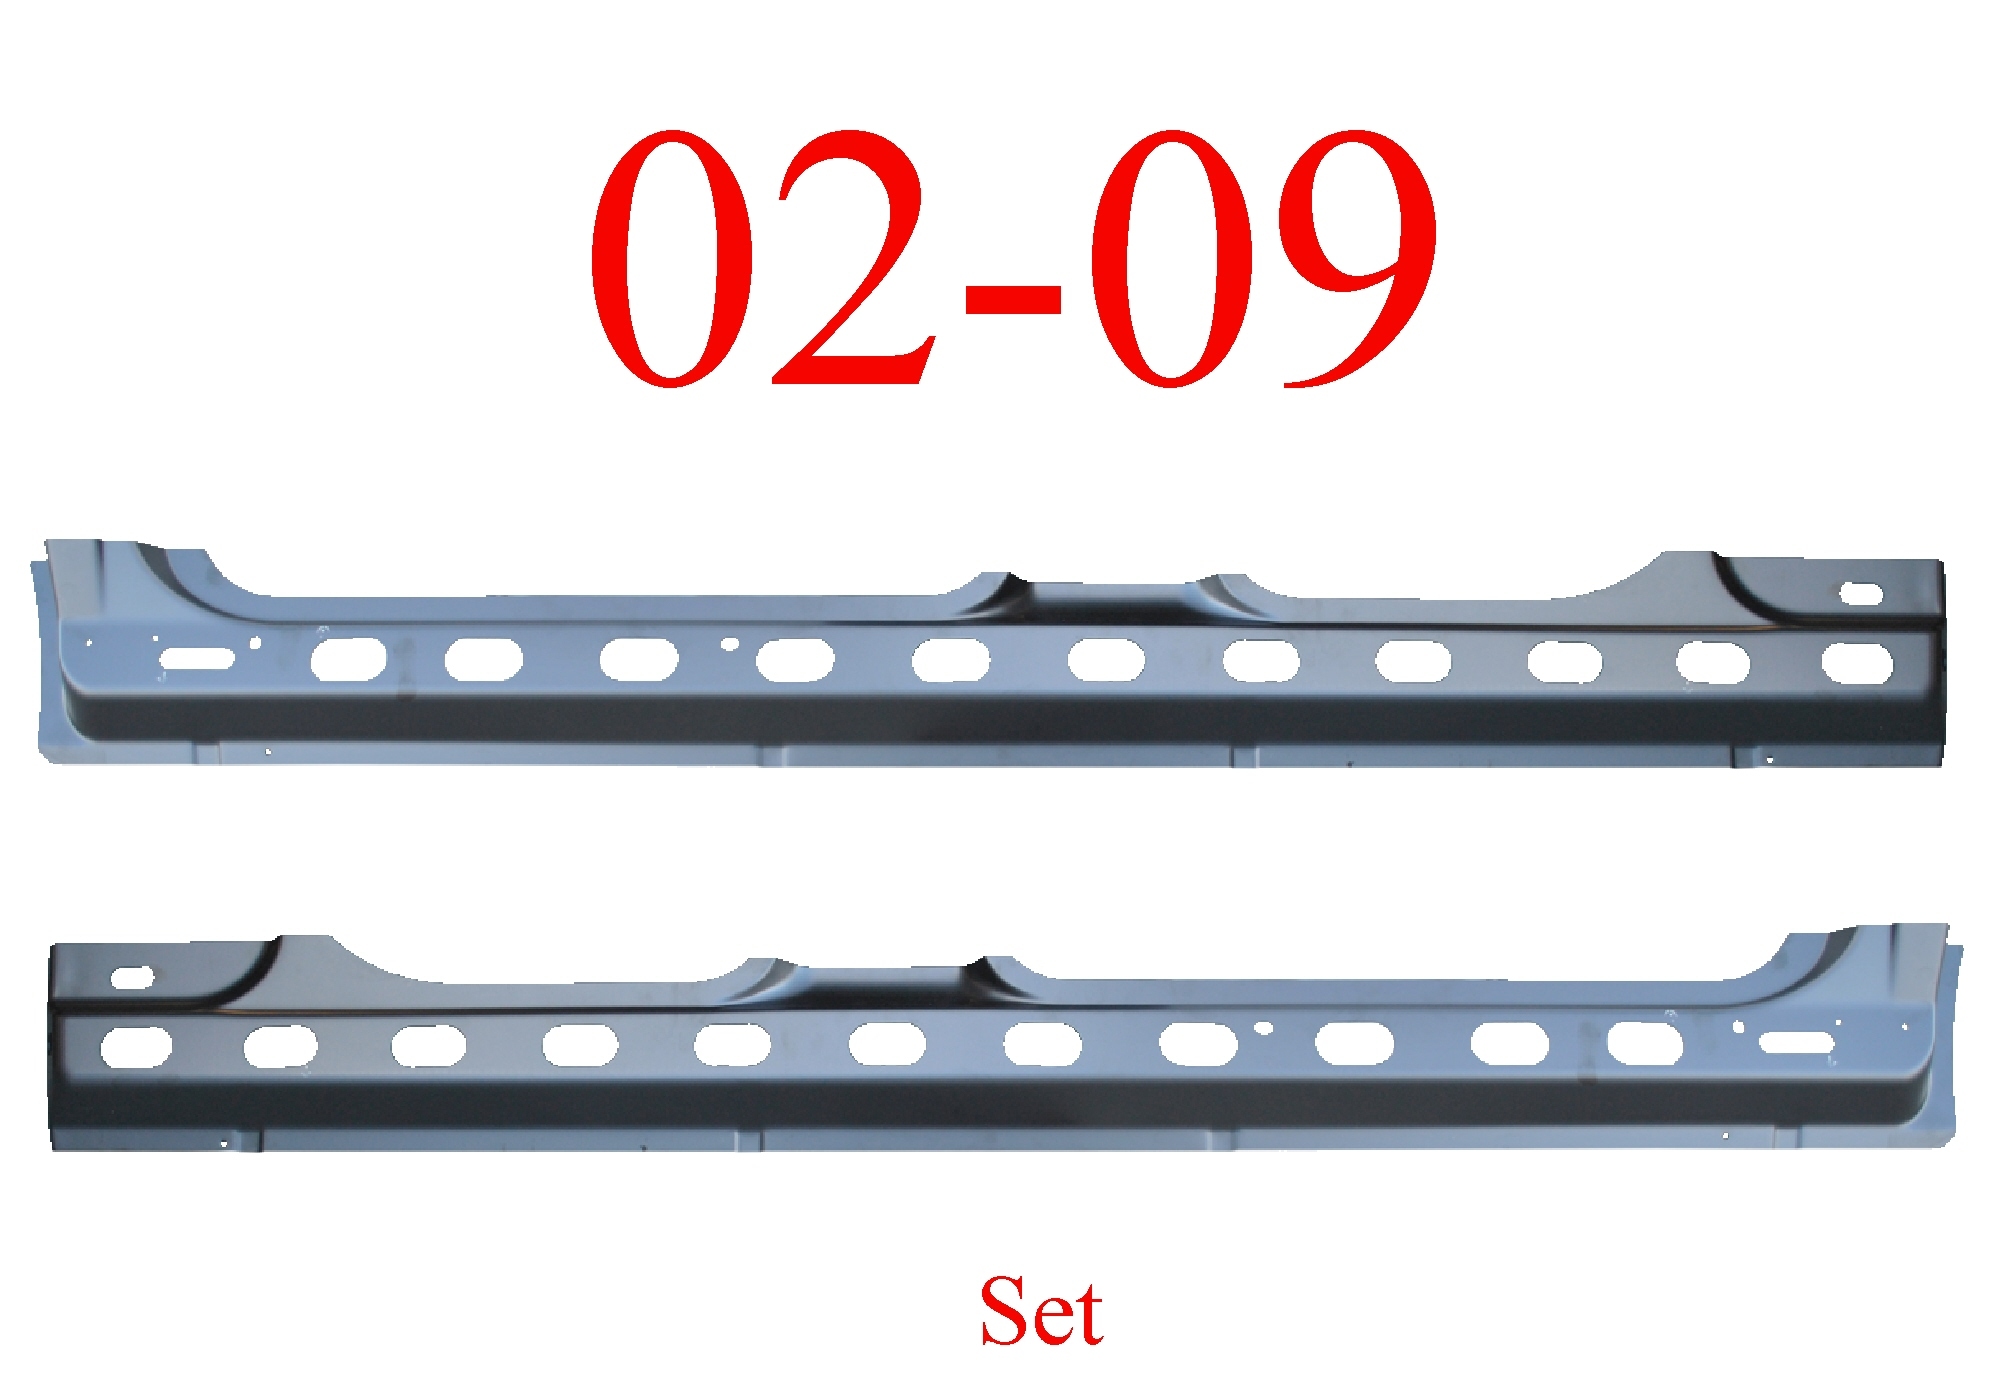 02 09 Dodge Quad Cab Inner Rocker Panel Set